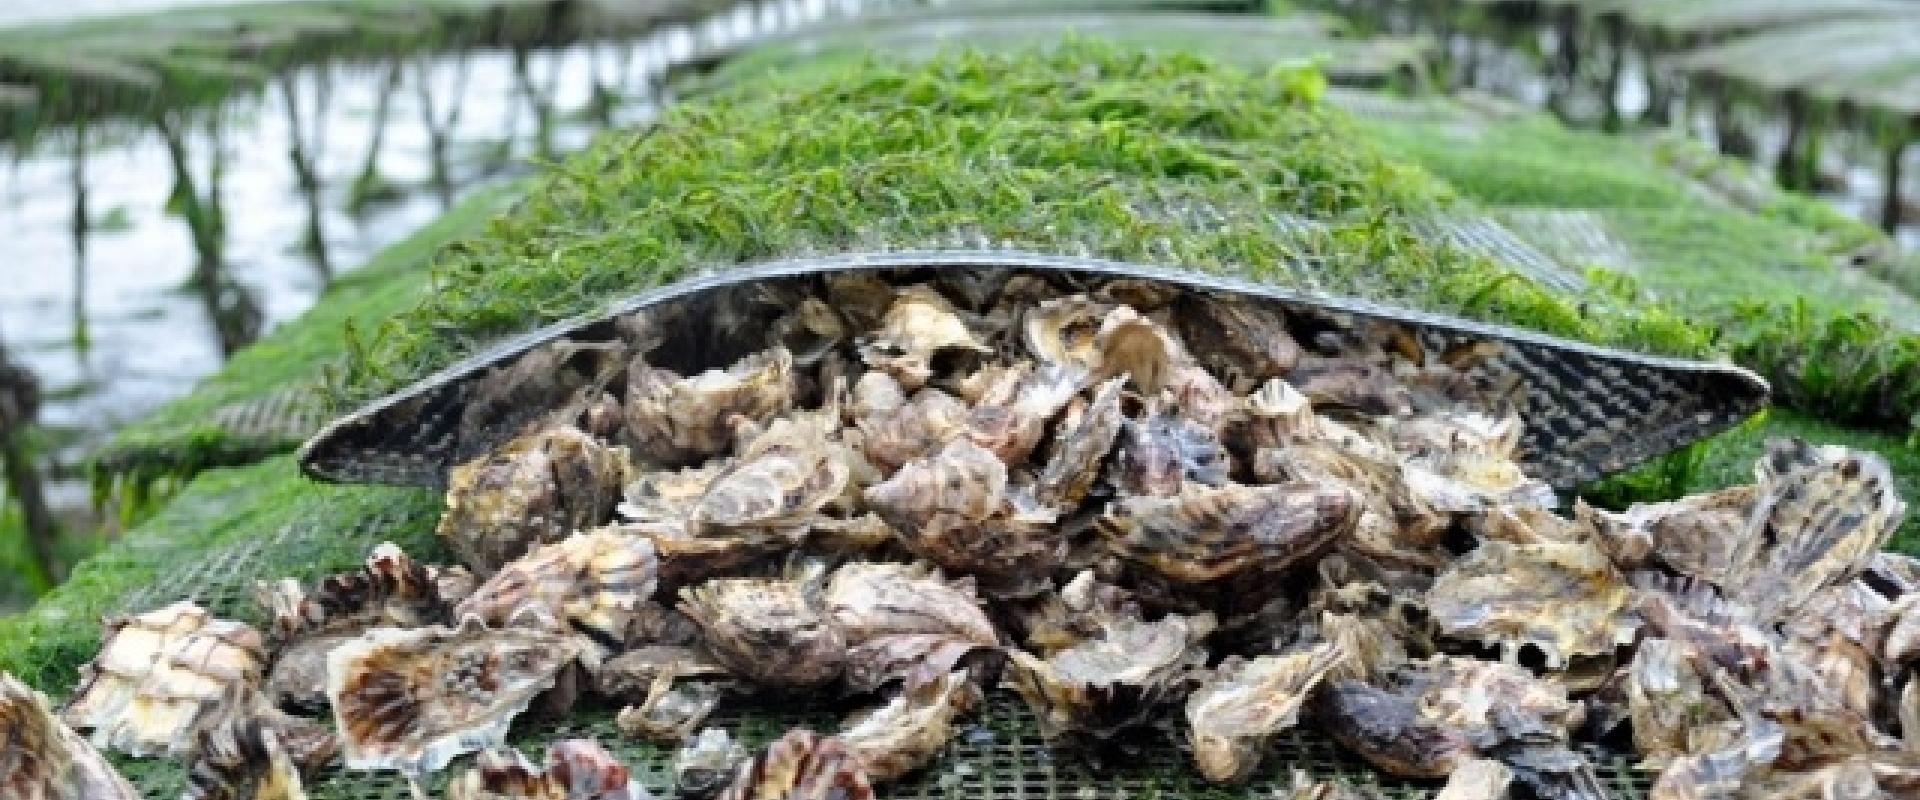 Visit of the mussels farm in Liguria